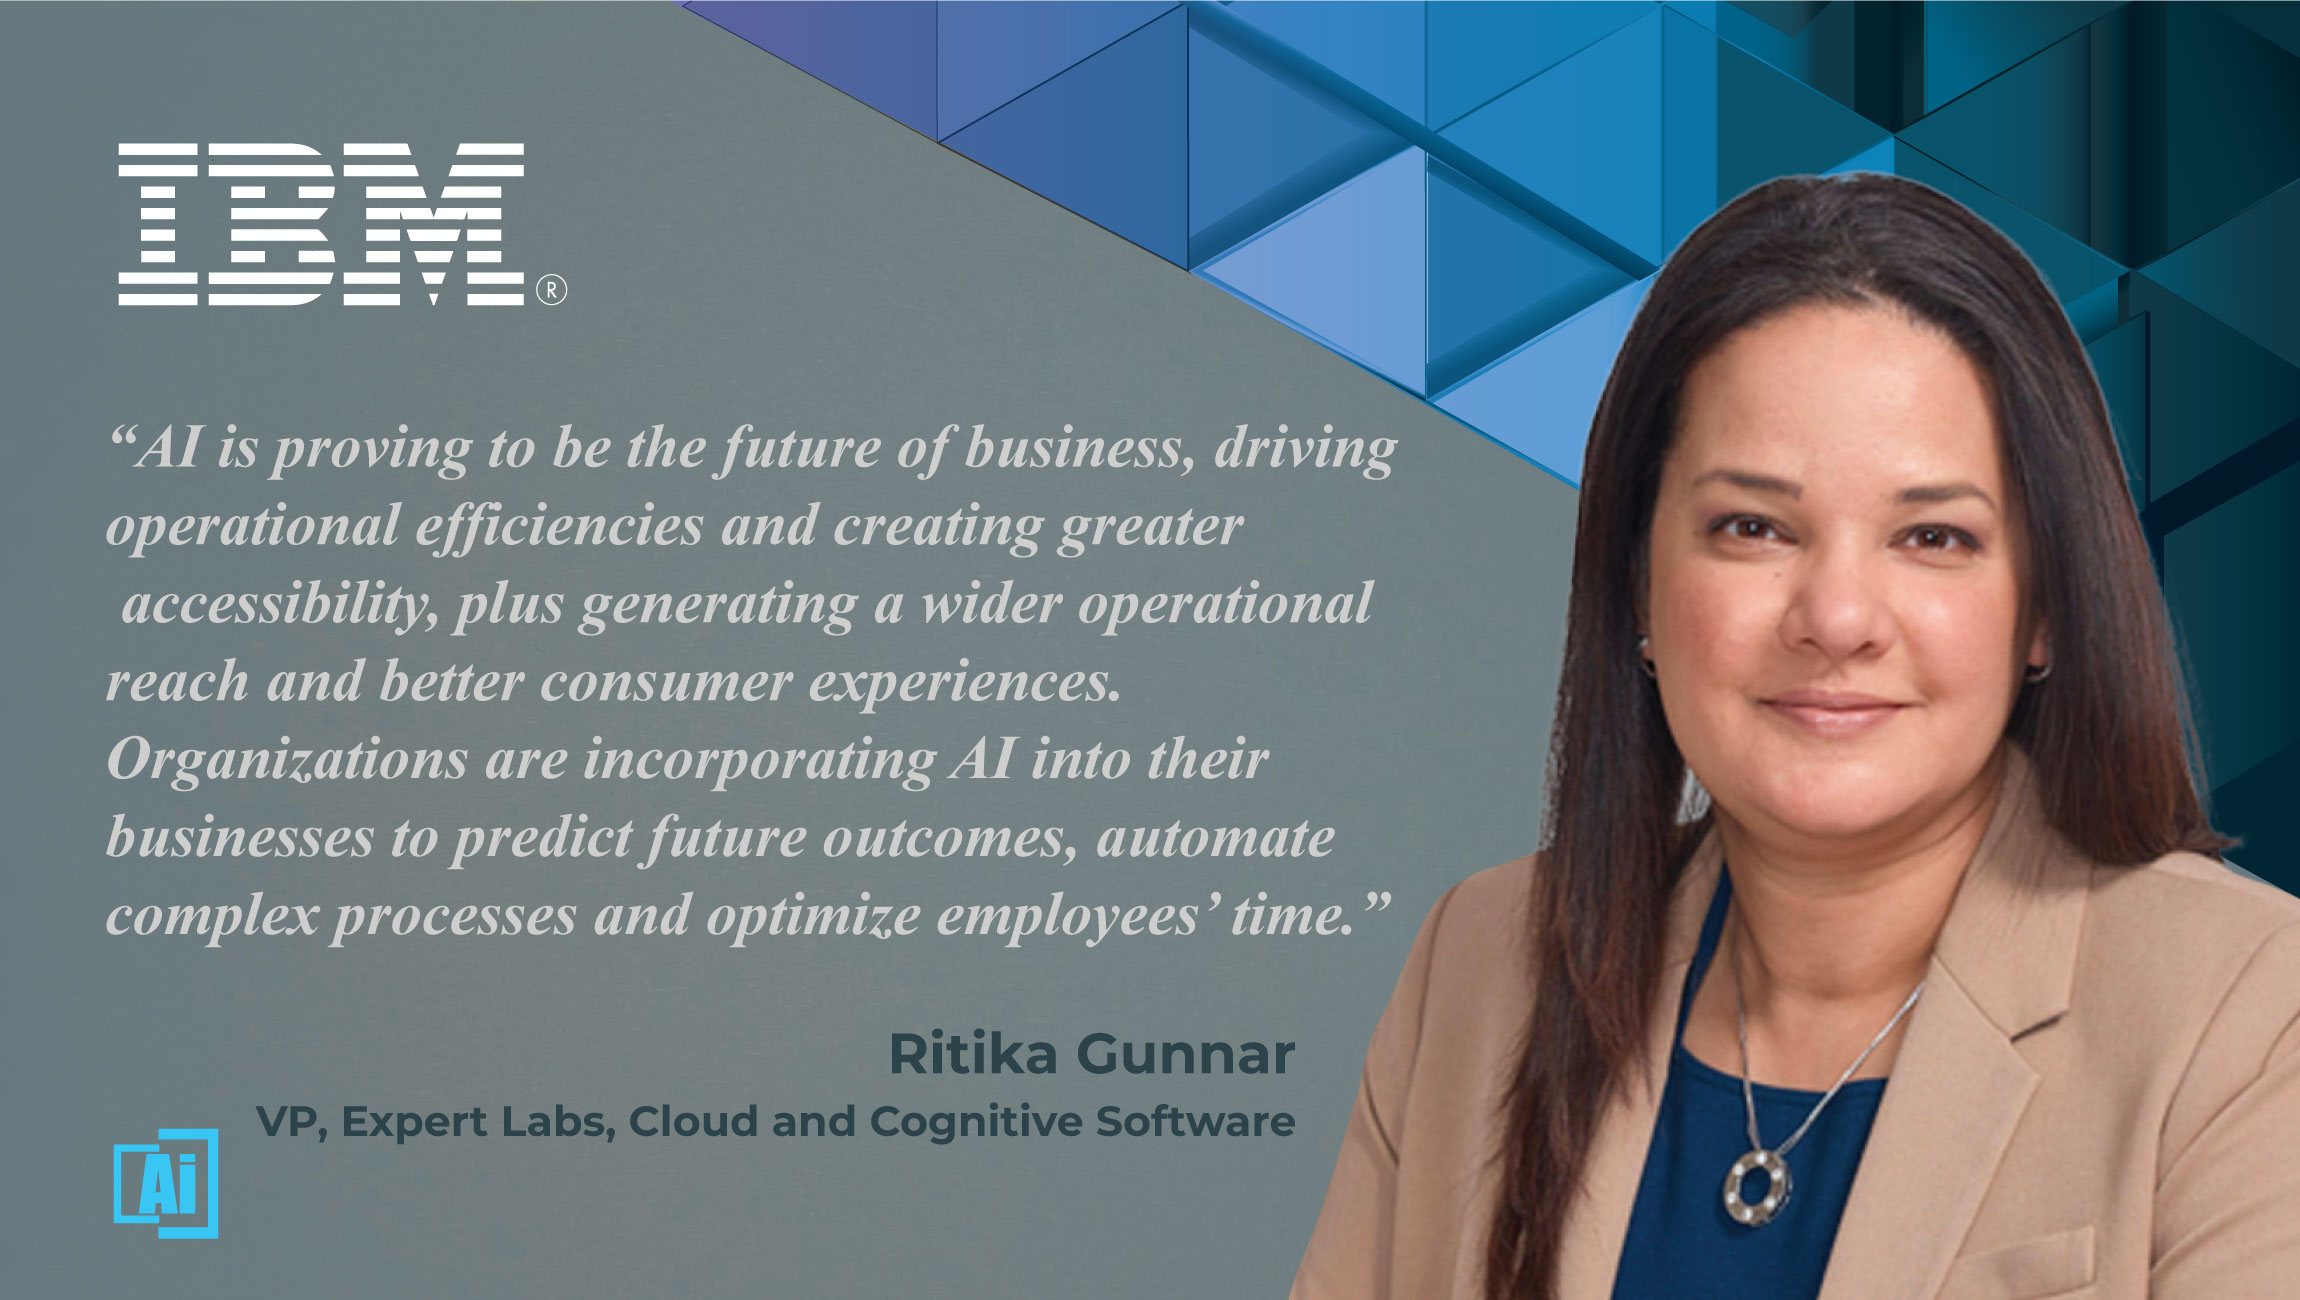 AiThority Interview with Ritika Gunnar, VP, Expert Labs, Cloud and Cognitive Software at IBM